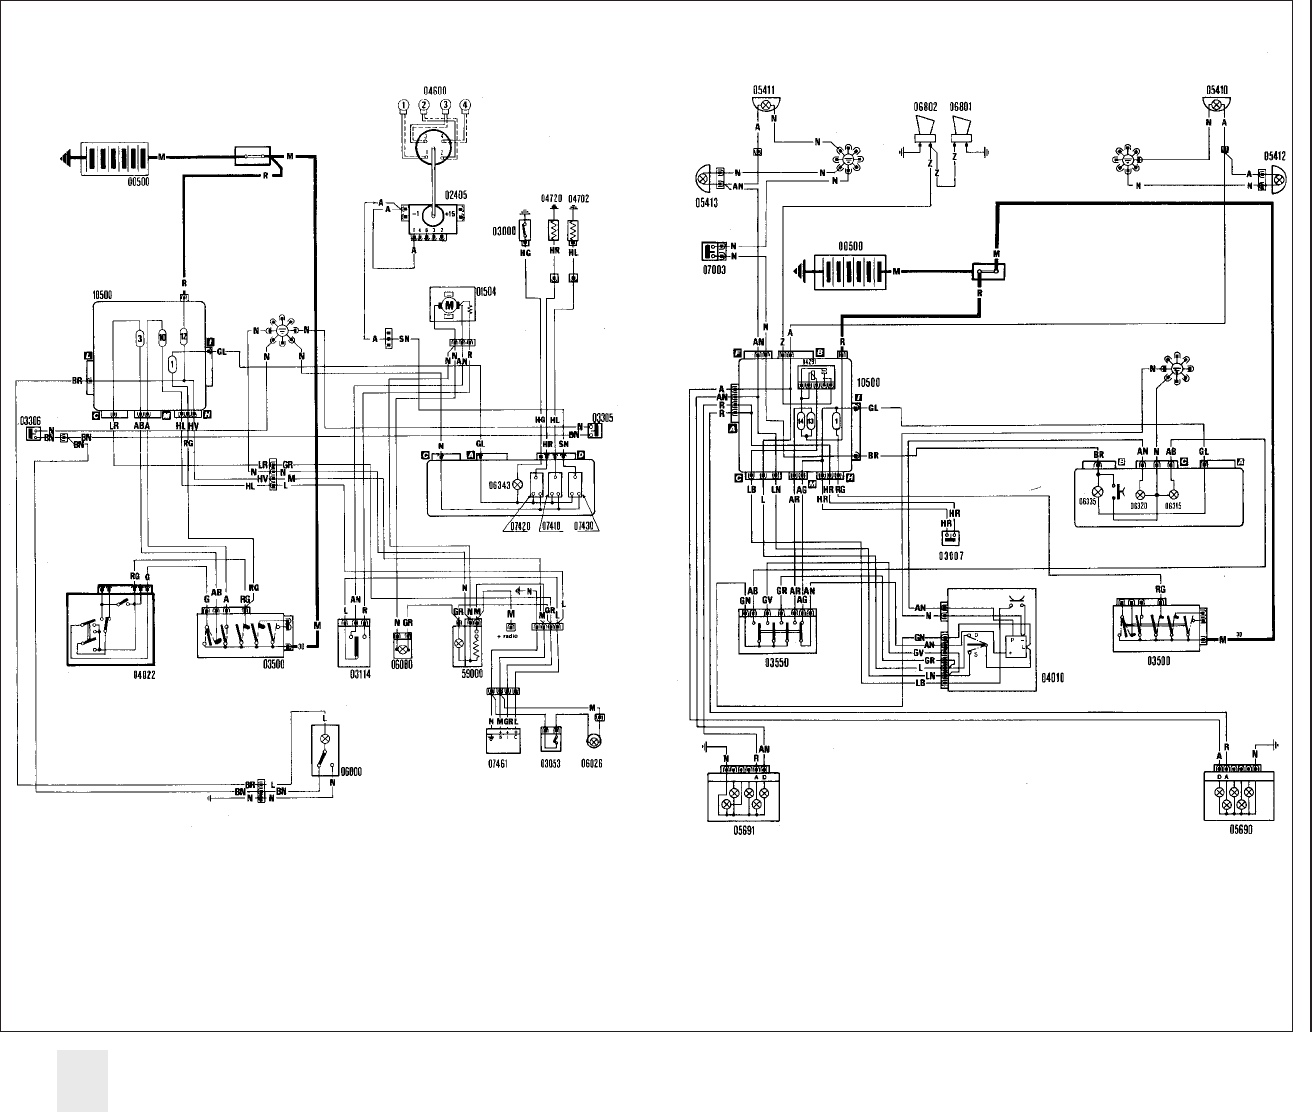 Wiring Diagram Also Onan Generator Additionally Onan